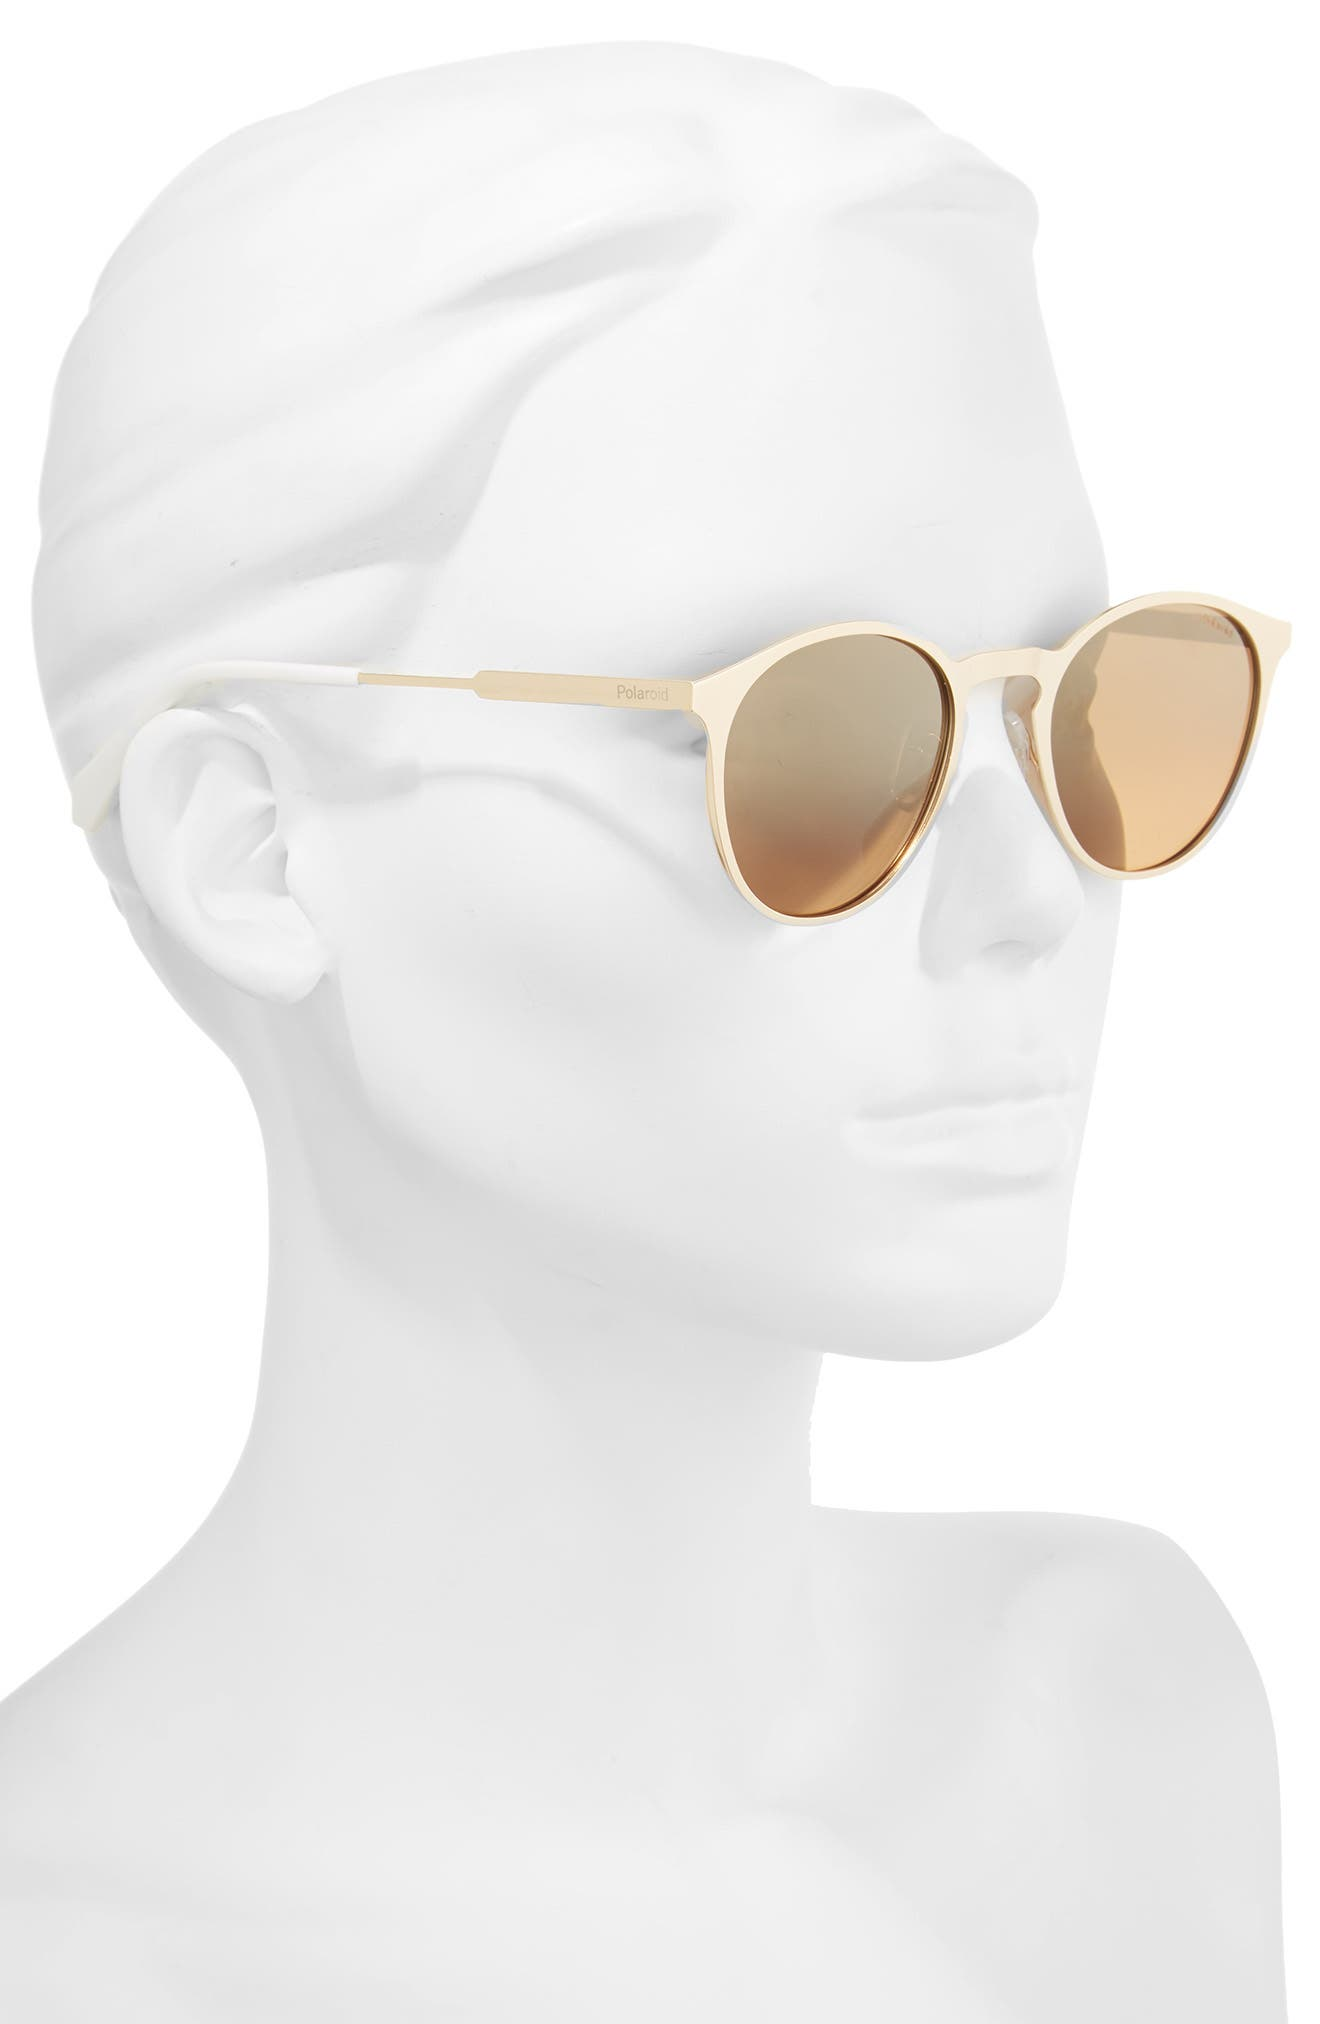 50mm Round Polarized Sunglasses,                             Alternate thumbnail 2, color,                             Gold